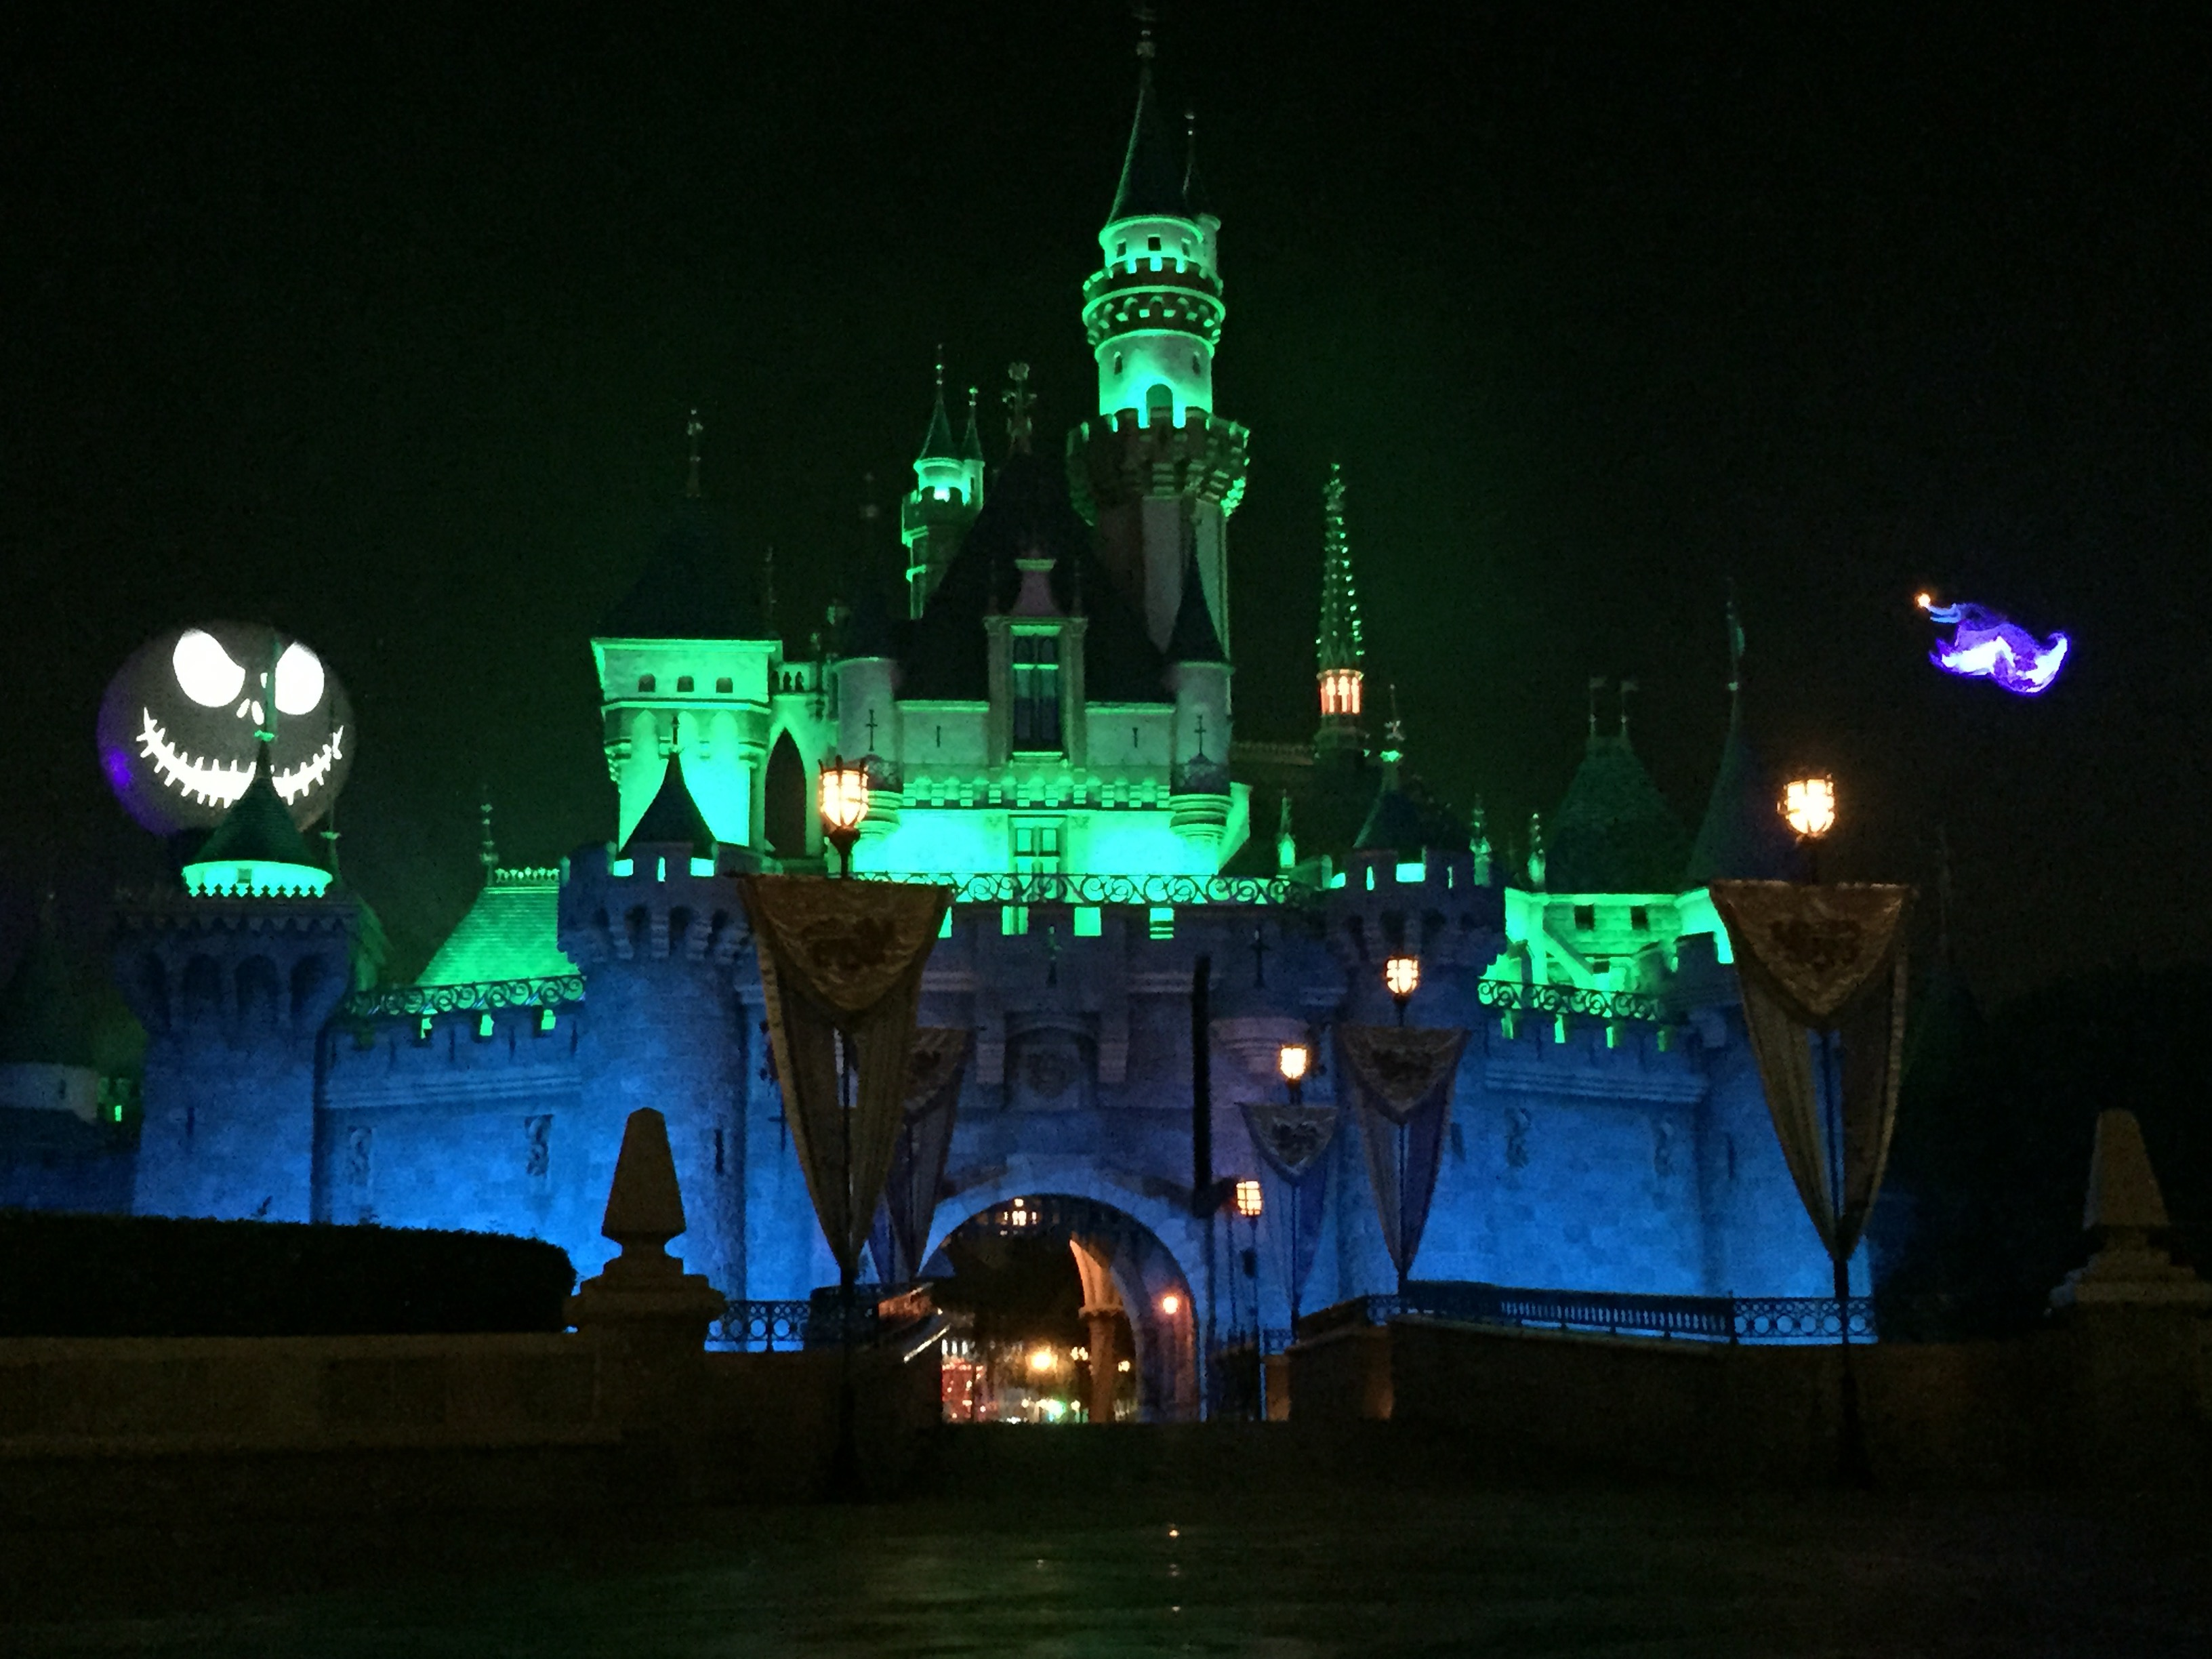 Mouseplanet - Celebrating Halloween at Disneyland by Megan Walker